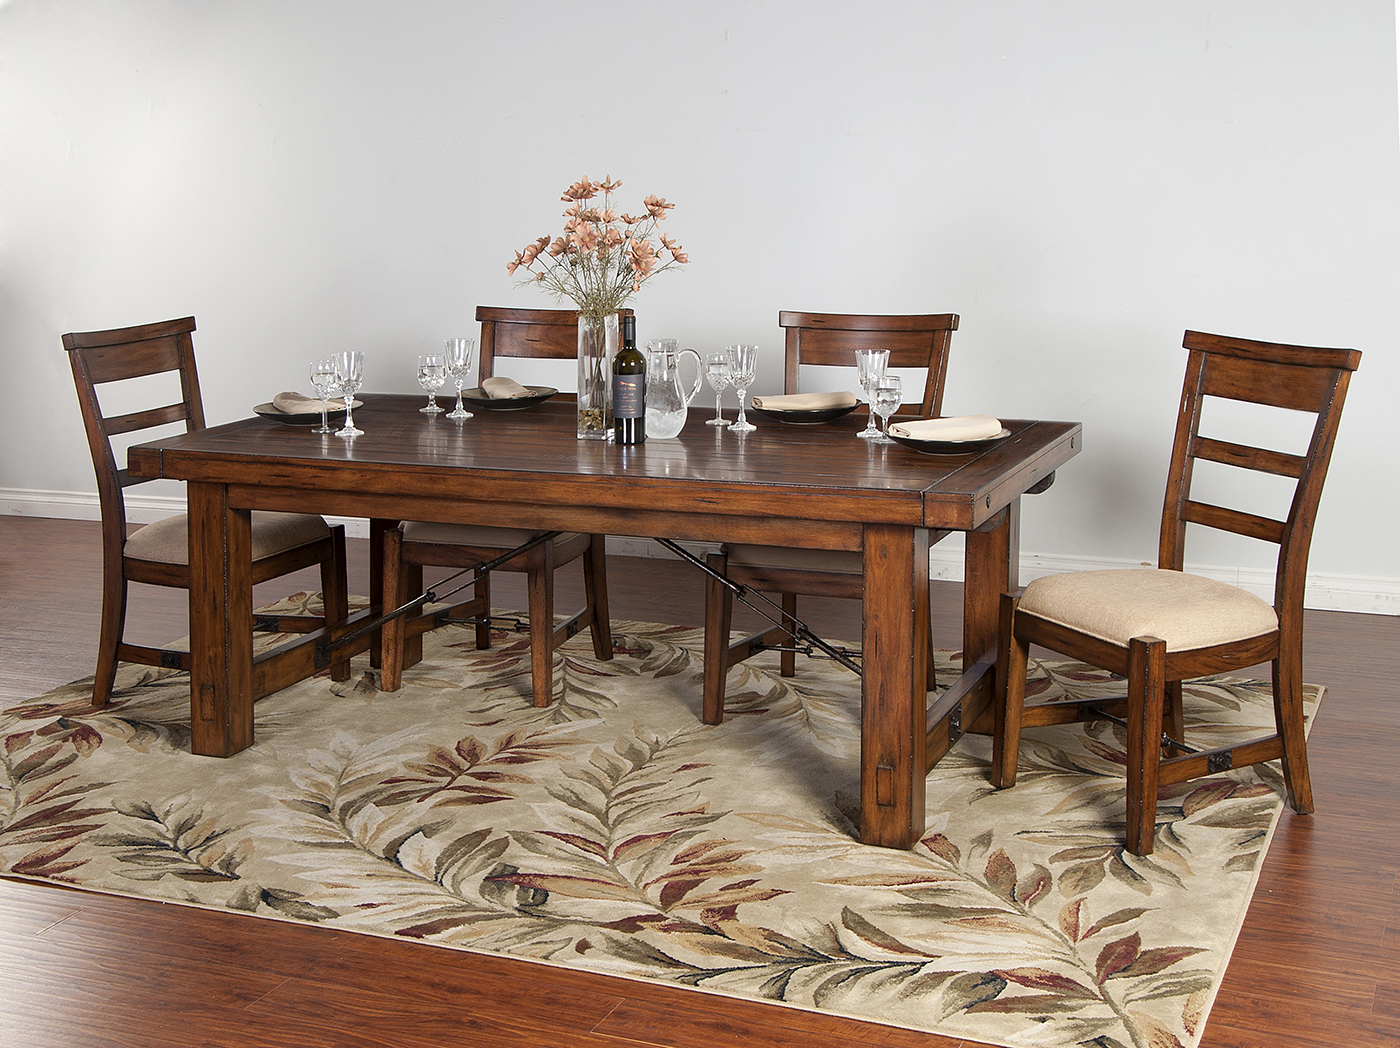 Genial Tuscany 5 Pc. Extension Dining Table Set